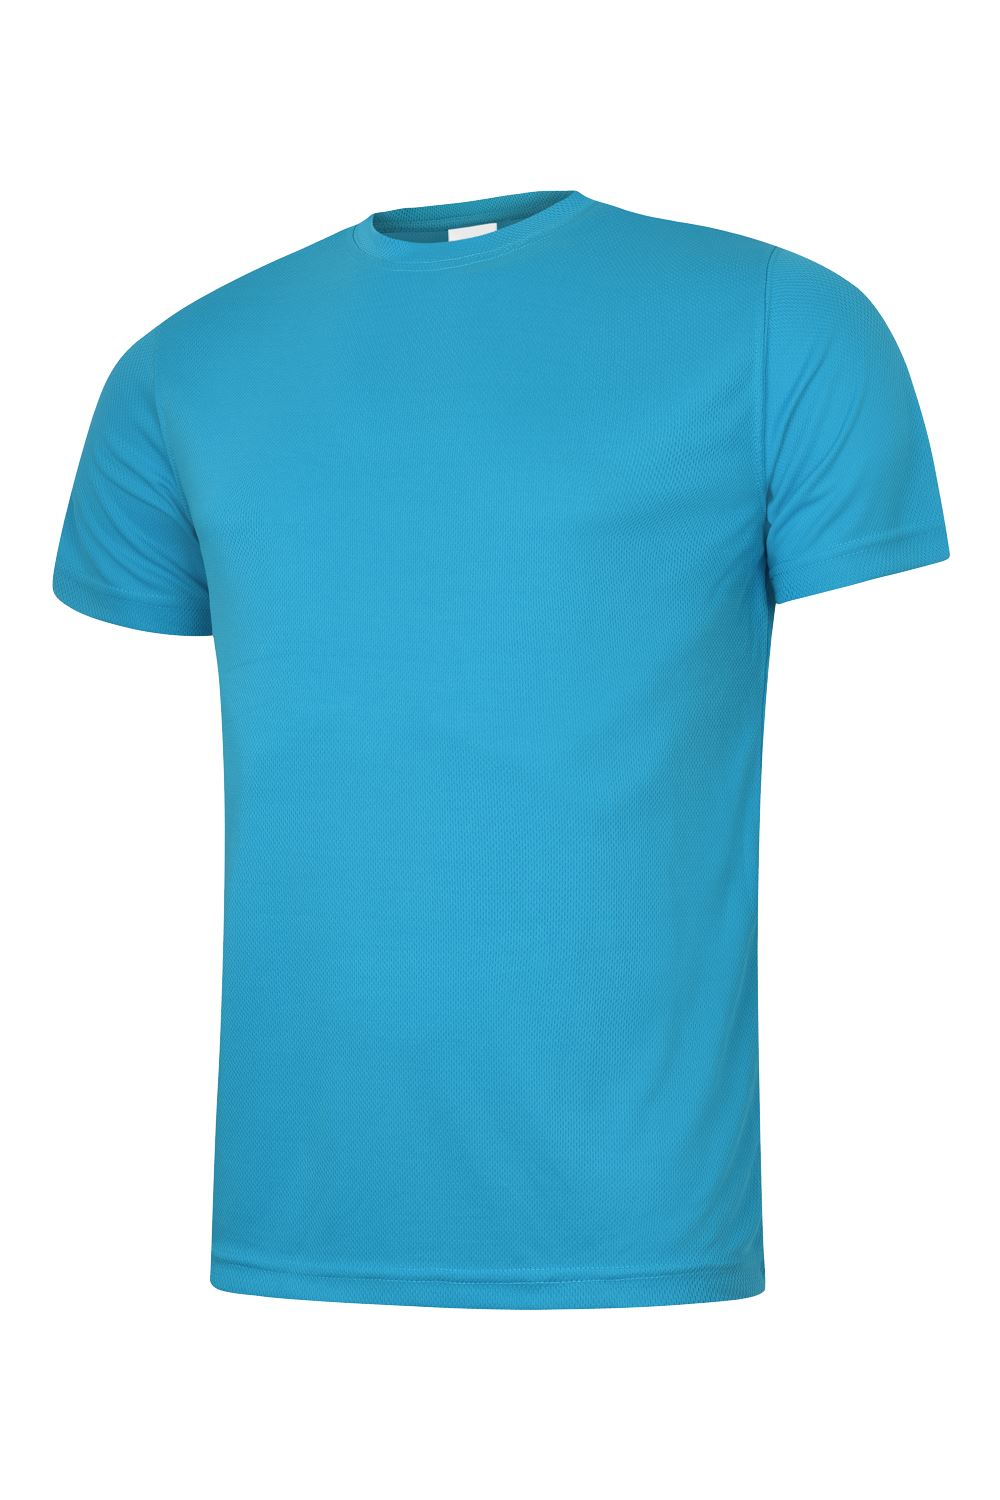 Mens ultra cool t shirt tshirt short sleeve breathable for Great shirts for guys